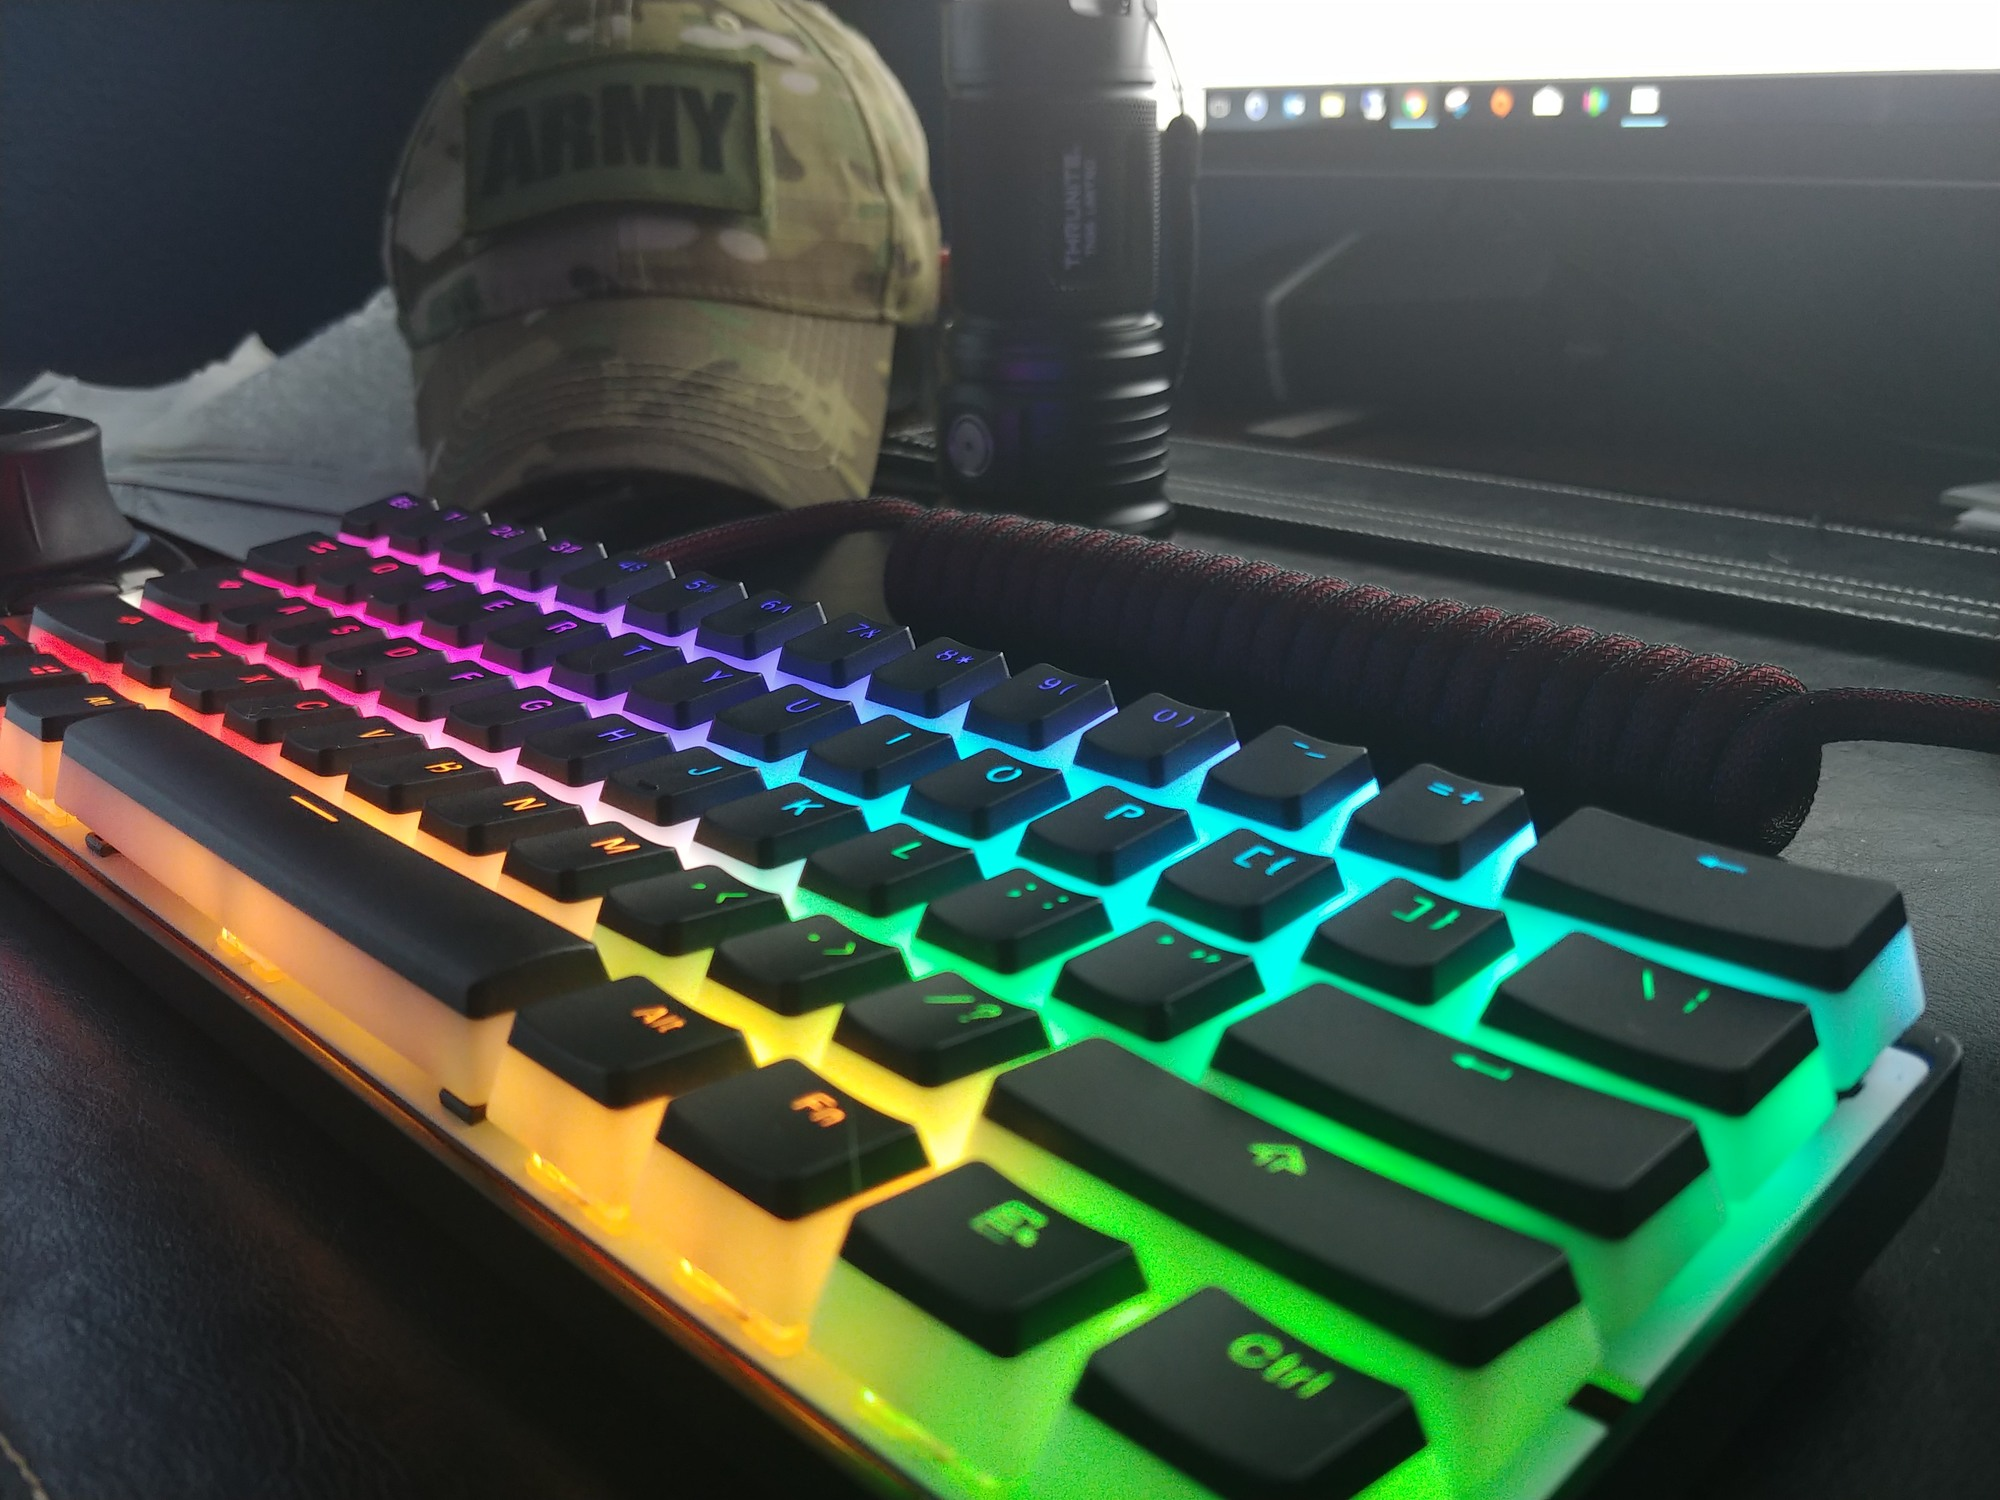 31eb30b4761 What Mouse and Keyboard Are You Using Right Now? | Page 3 | [H]ard|Forum